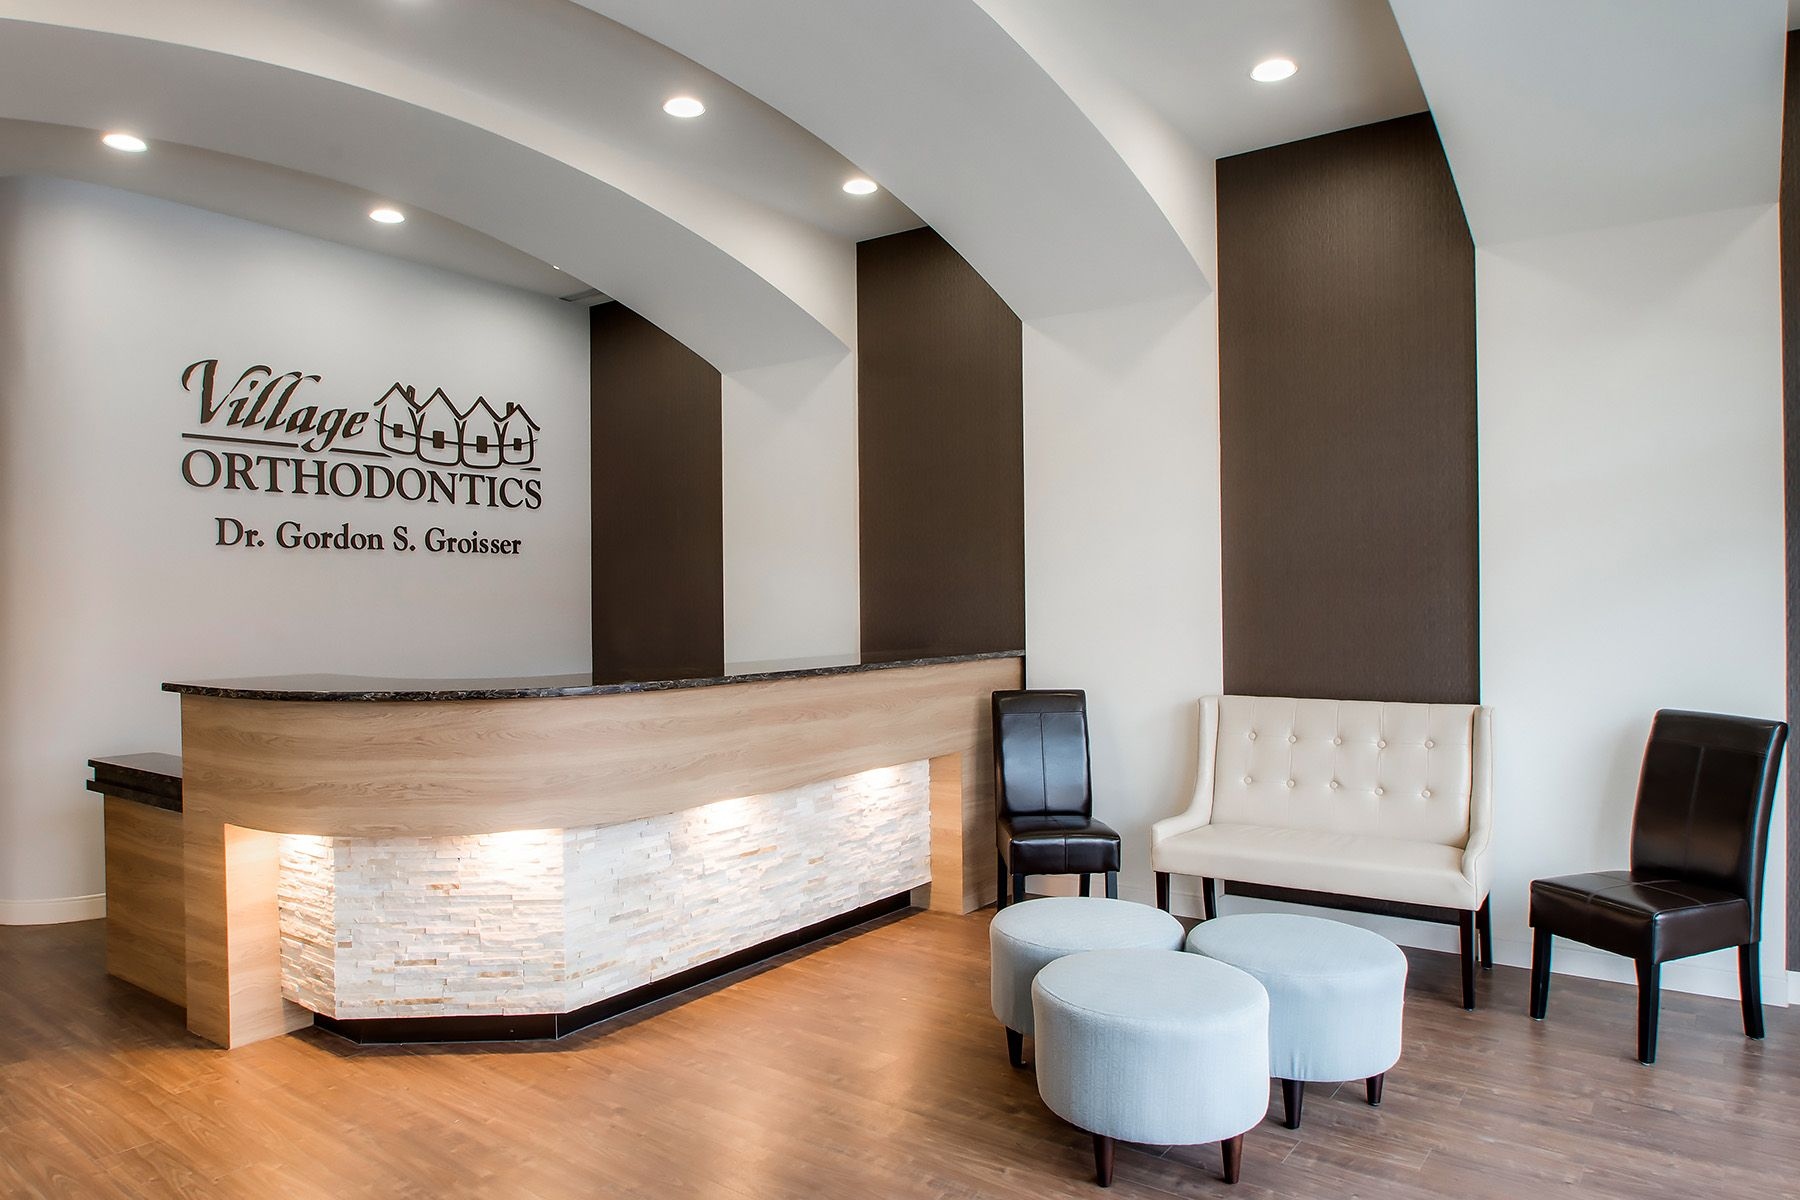 Village Orthodontics With Images Dental Office Decor